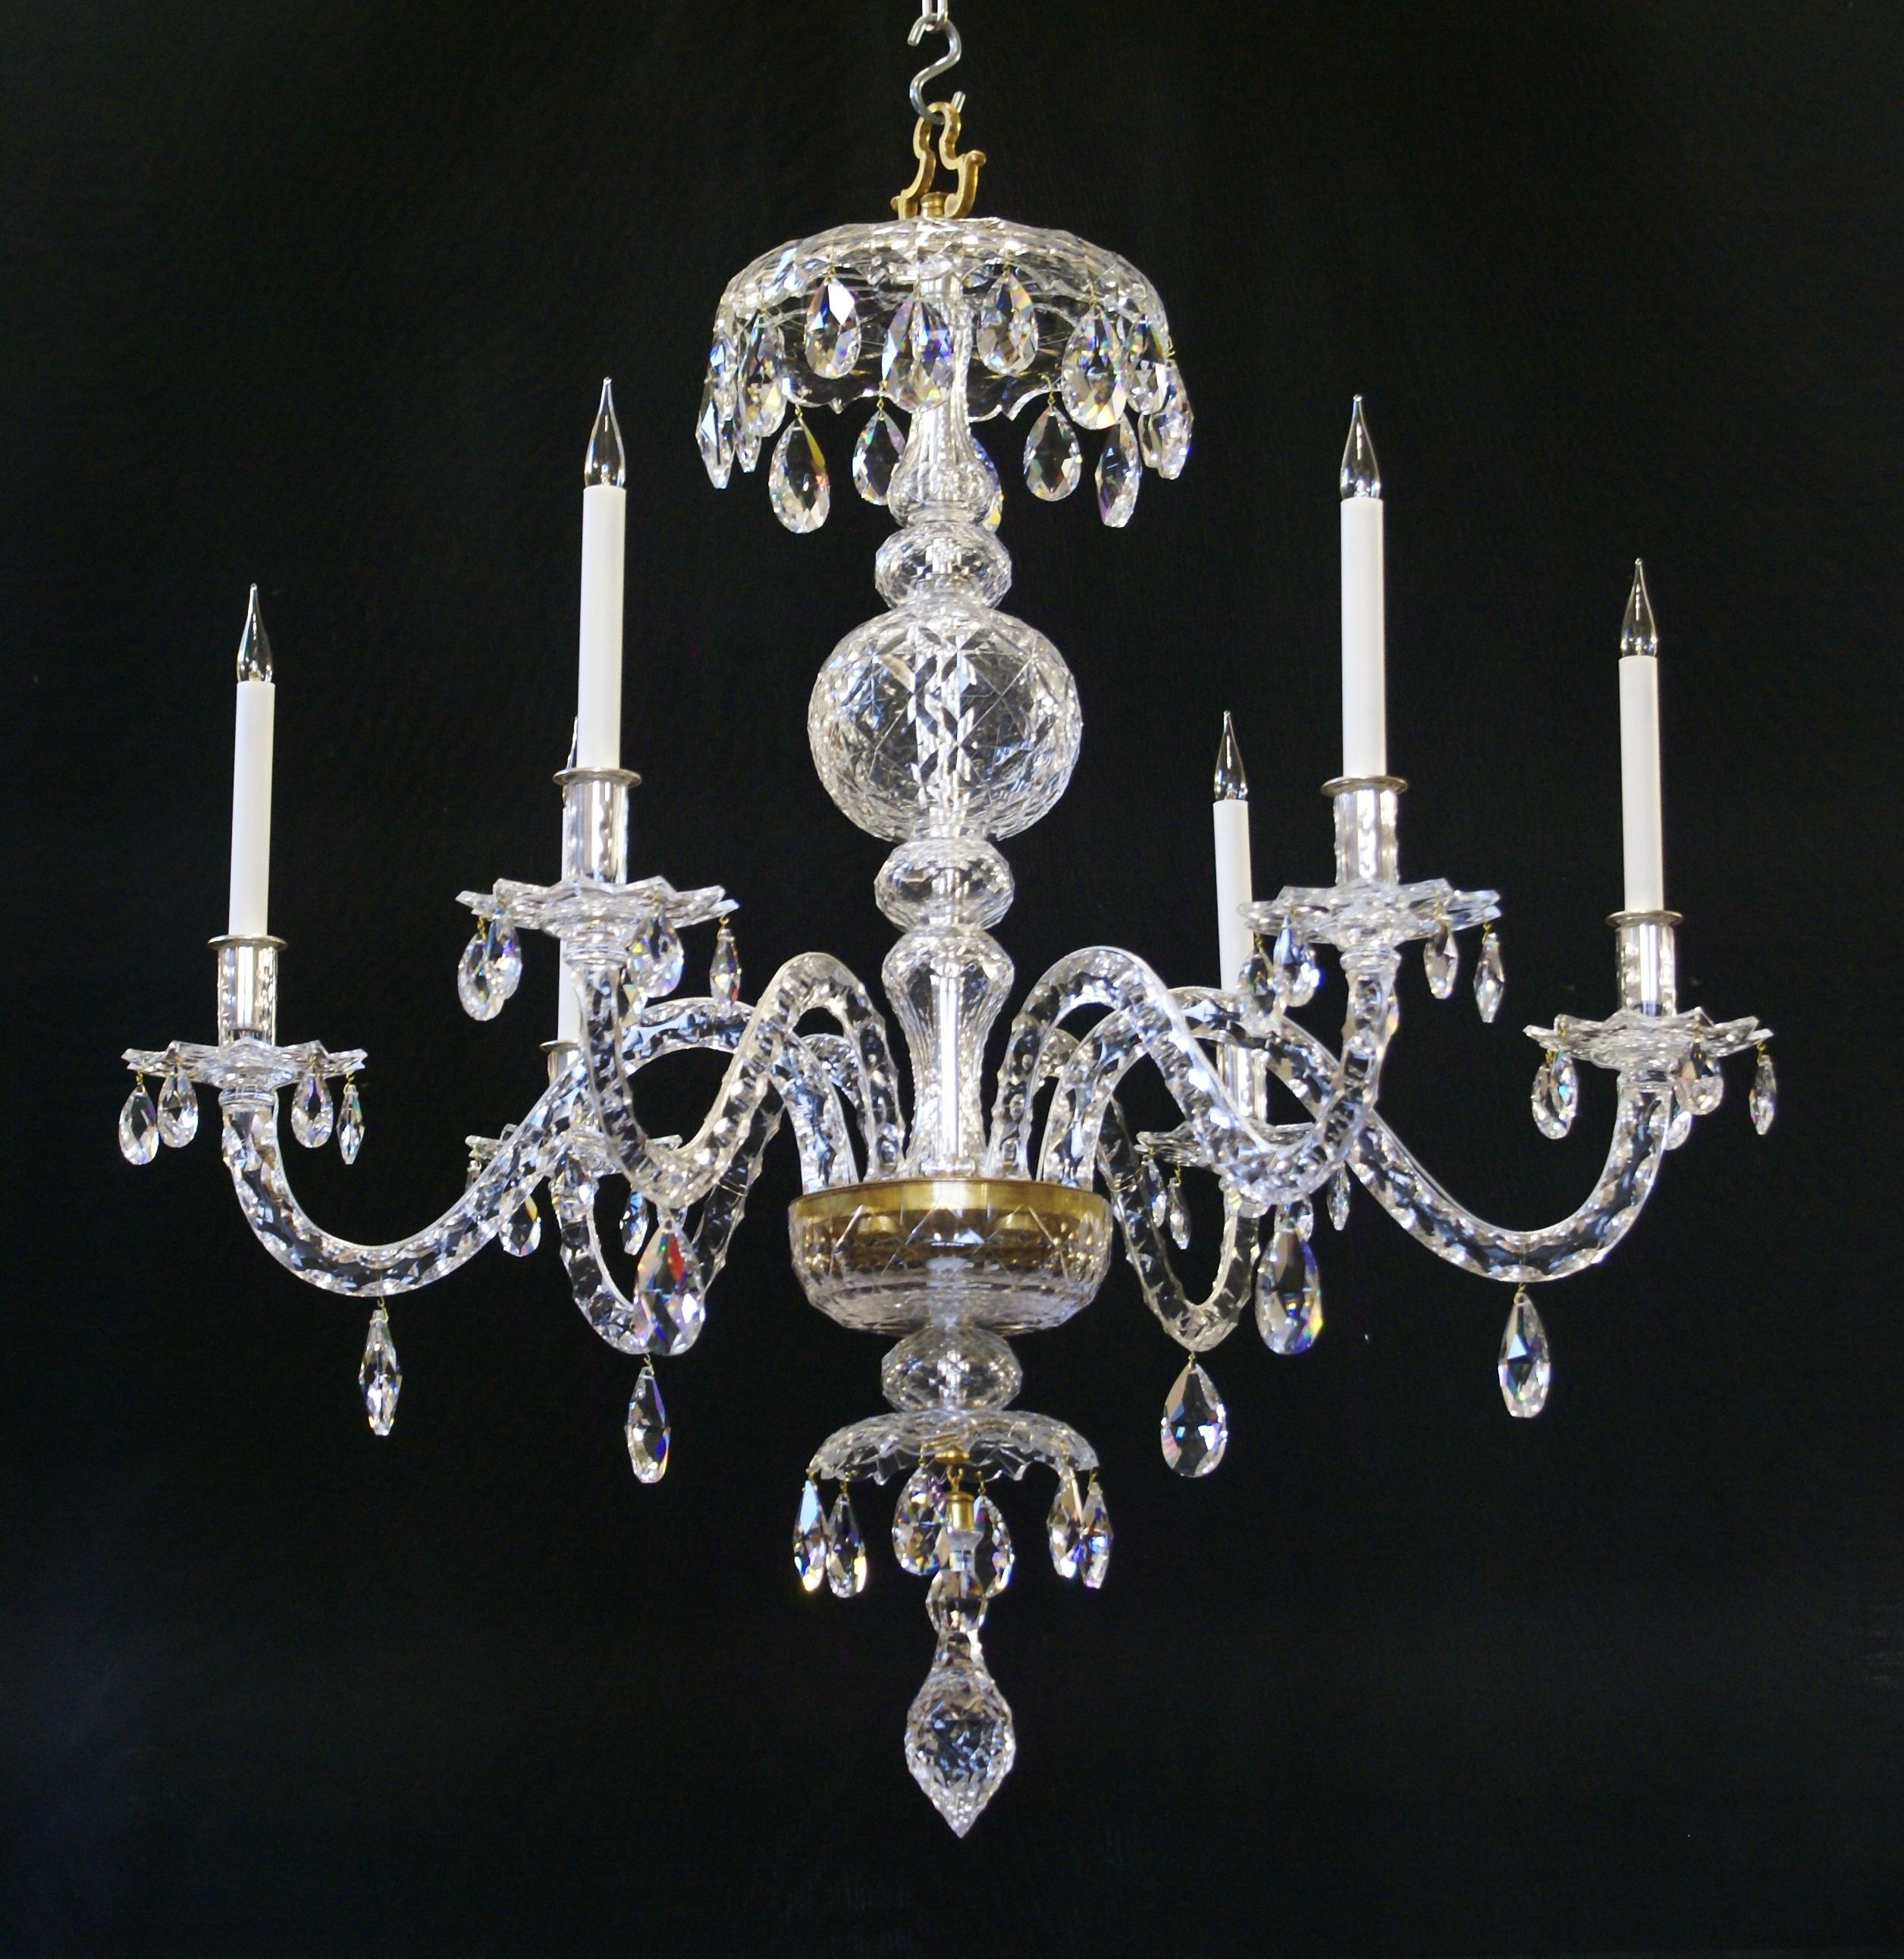 Most Recent Georgian Chandeliers In Restored Chandeliers And Lightingwilkinson Plc (View 13 of 15)